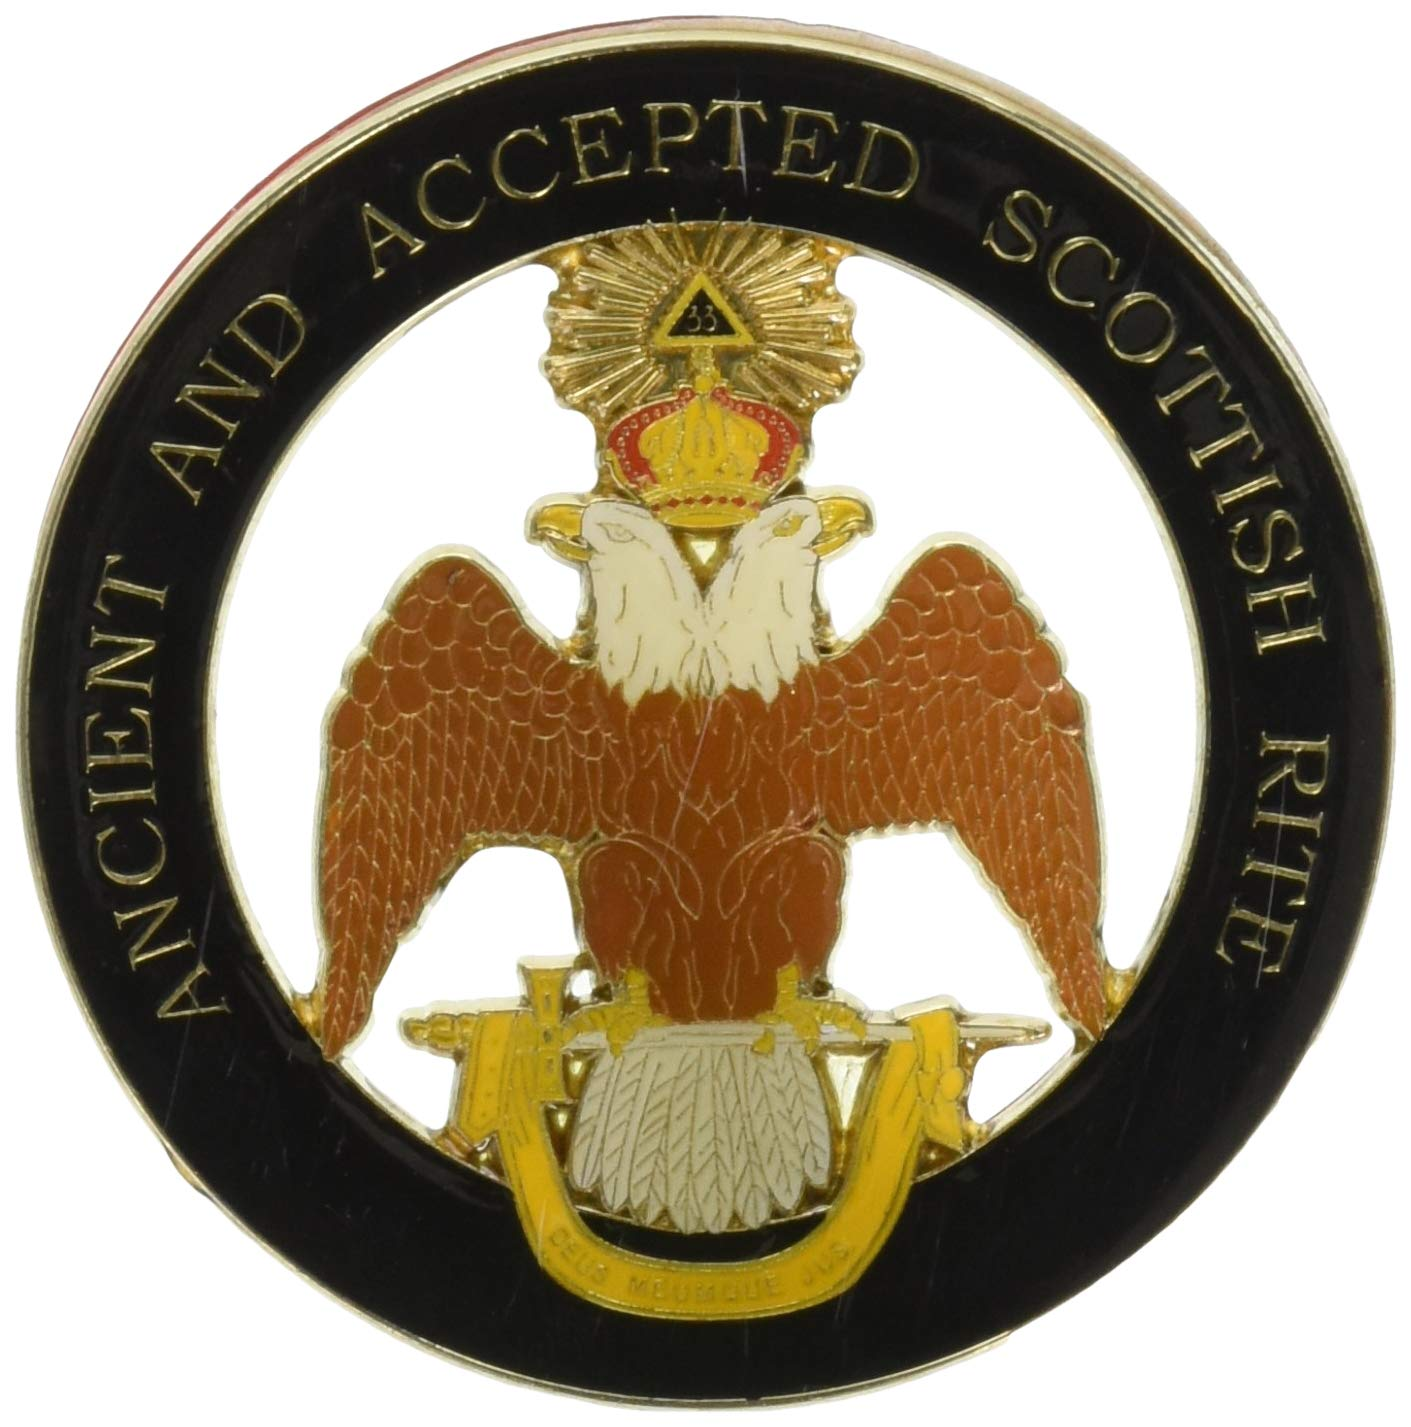 Wings Down 33rd Degree Double Headed Eagle 3 Diameter The Masonic Exchange TME-EMB-00066 Ancient /& Accepted Scottish Rite Round Black Masonic Auto Emblem